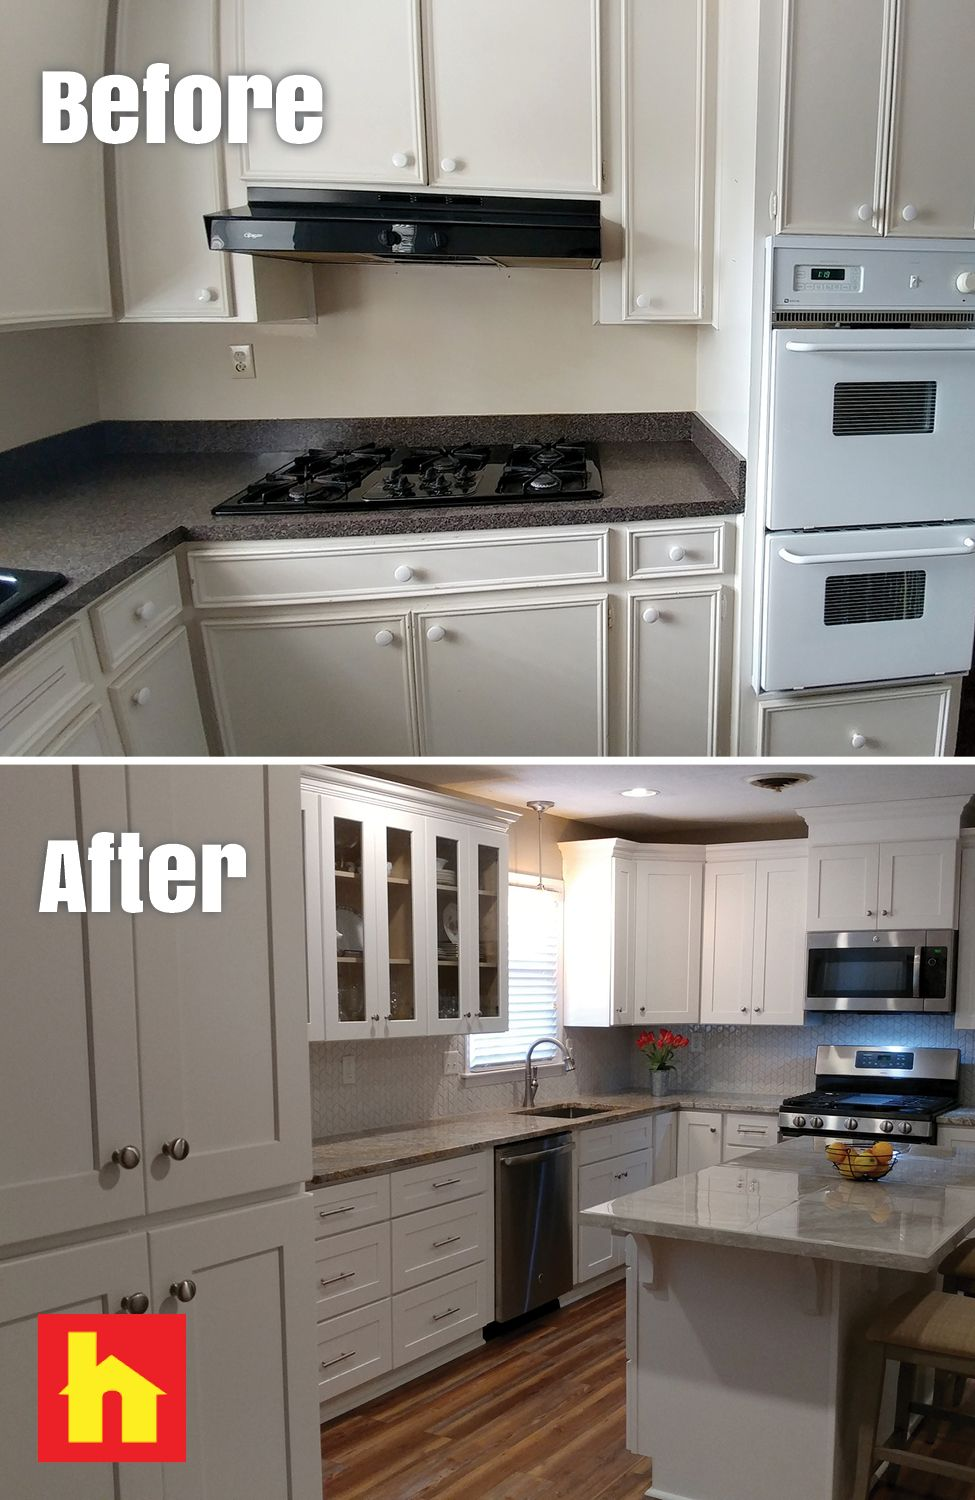 Kitchen Remodel With Before And After Picture Kitchen Remodel Kitchen Before After Home